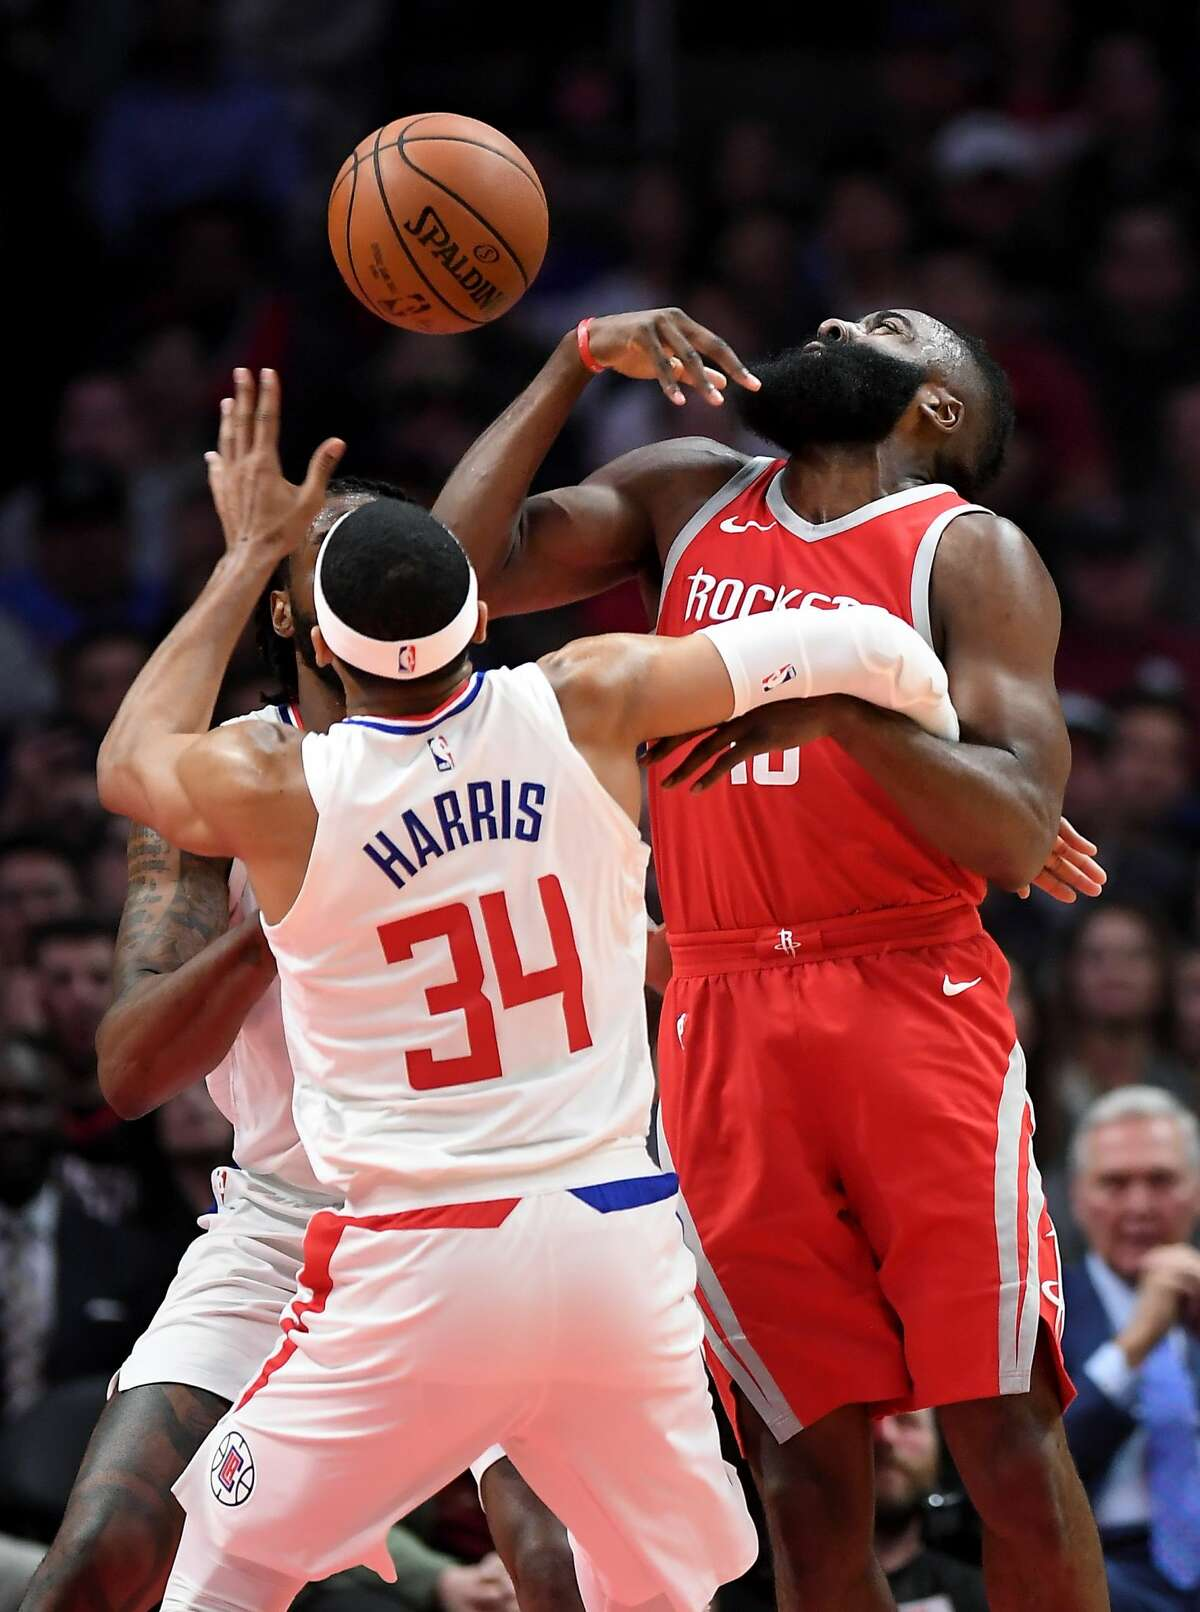 The Houston Rockets' James Harden, right, is fouled by the Los Angeles Clippers' Tobias Harris (34) while attempting a shot in the first quarter at the Staples Center in Los Angeles on Wednesday, Feb. 28, 2018. (Wally Skalij/Los Angeles Times/TNS)